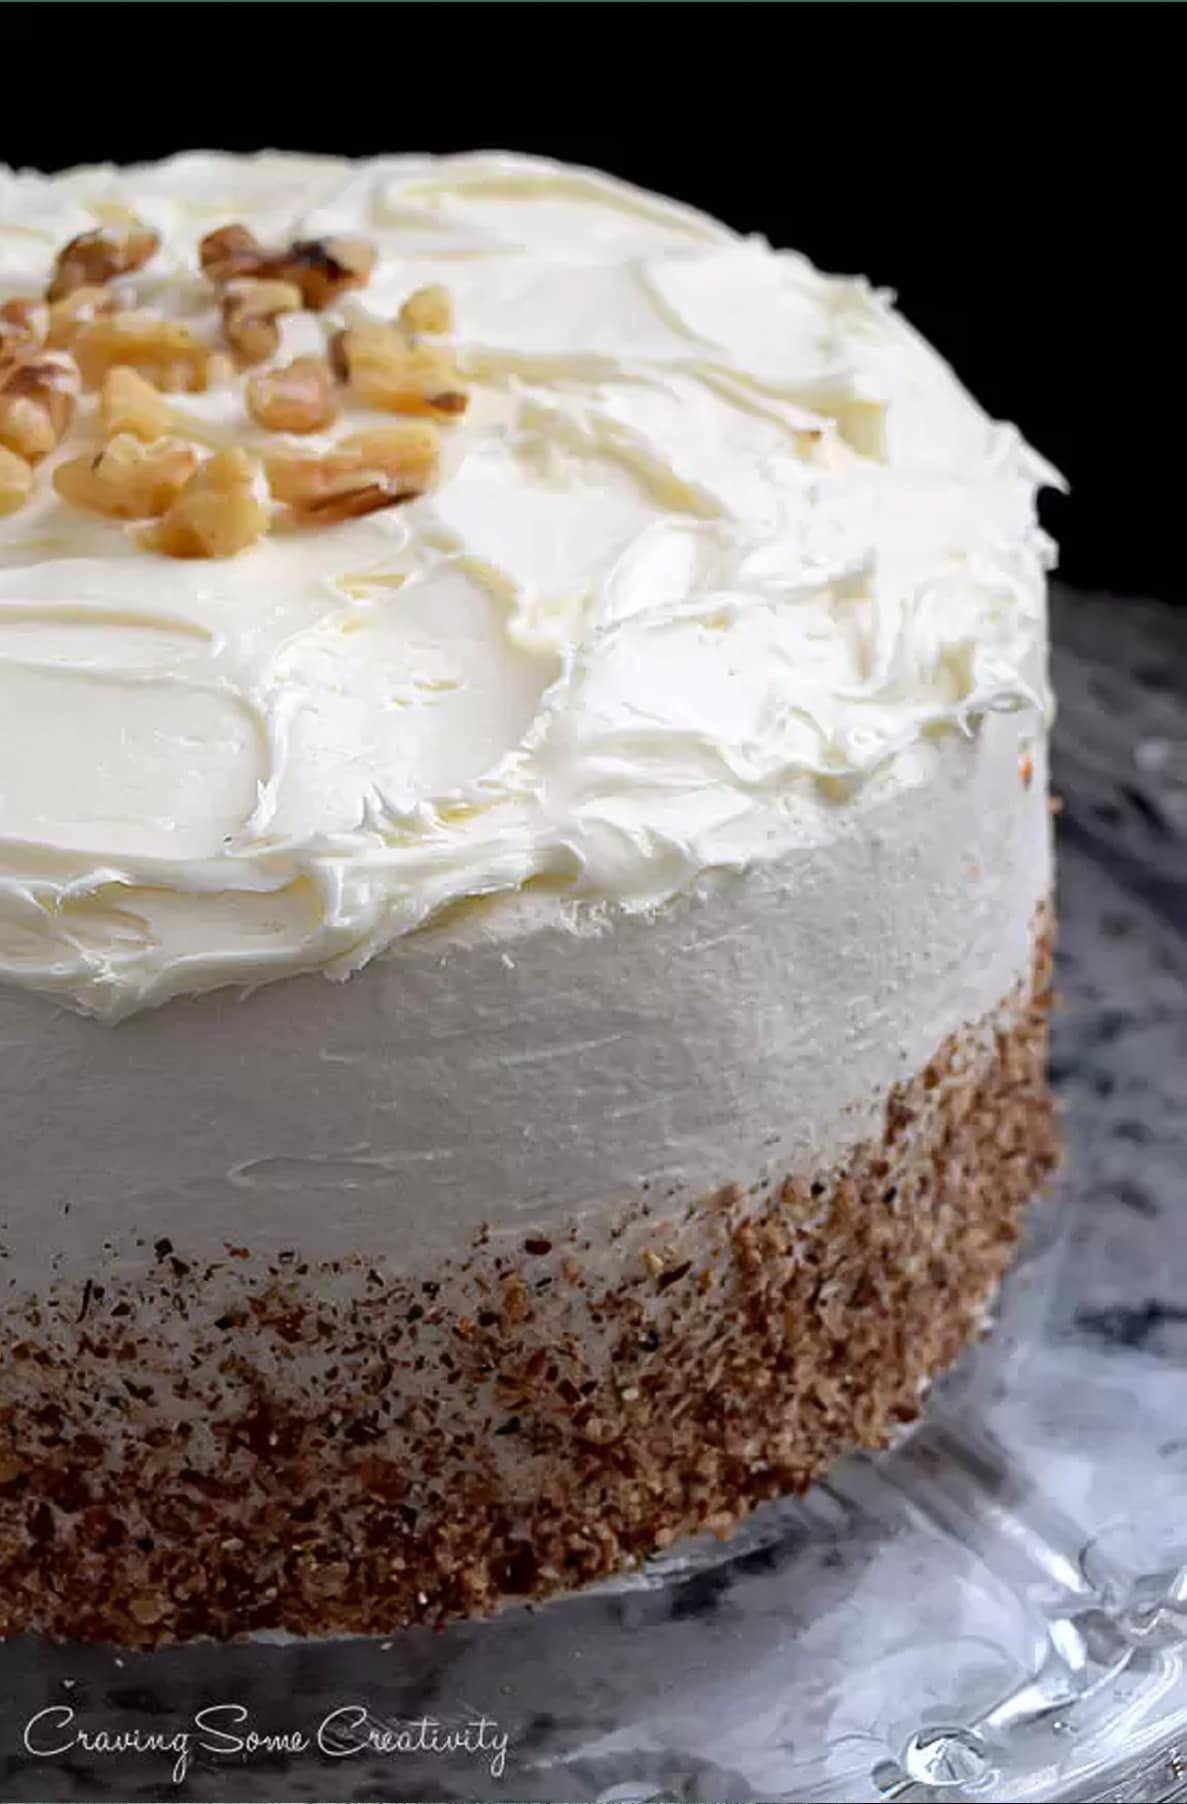 Whole carrot cake with cream cheese frosting, topped with chopped walnuts and crushed walnuts around the side on marble surface.